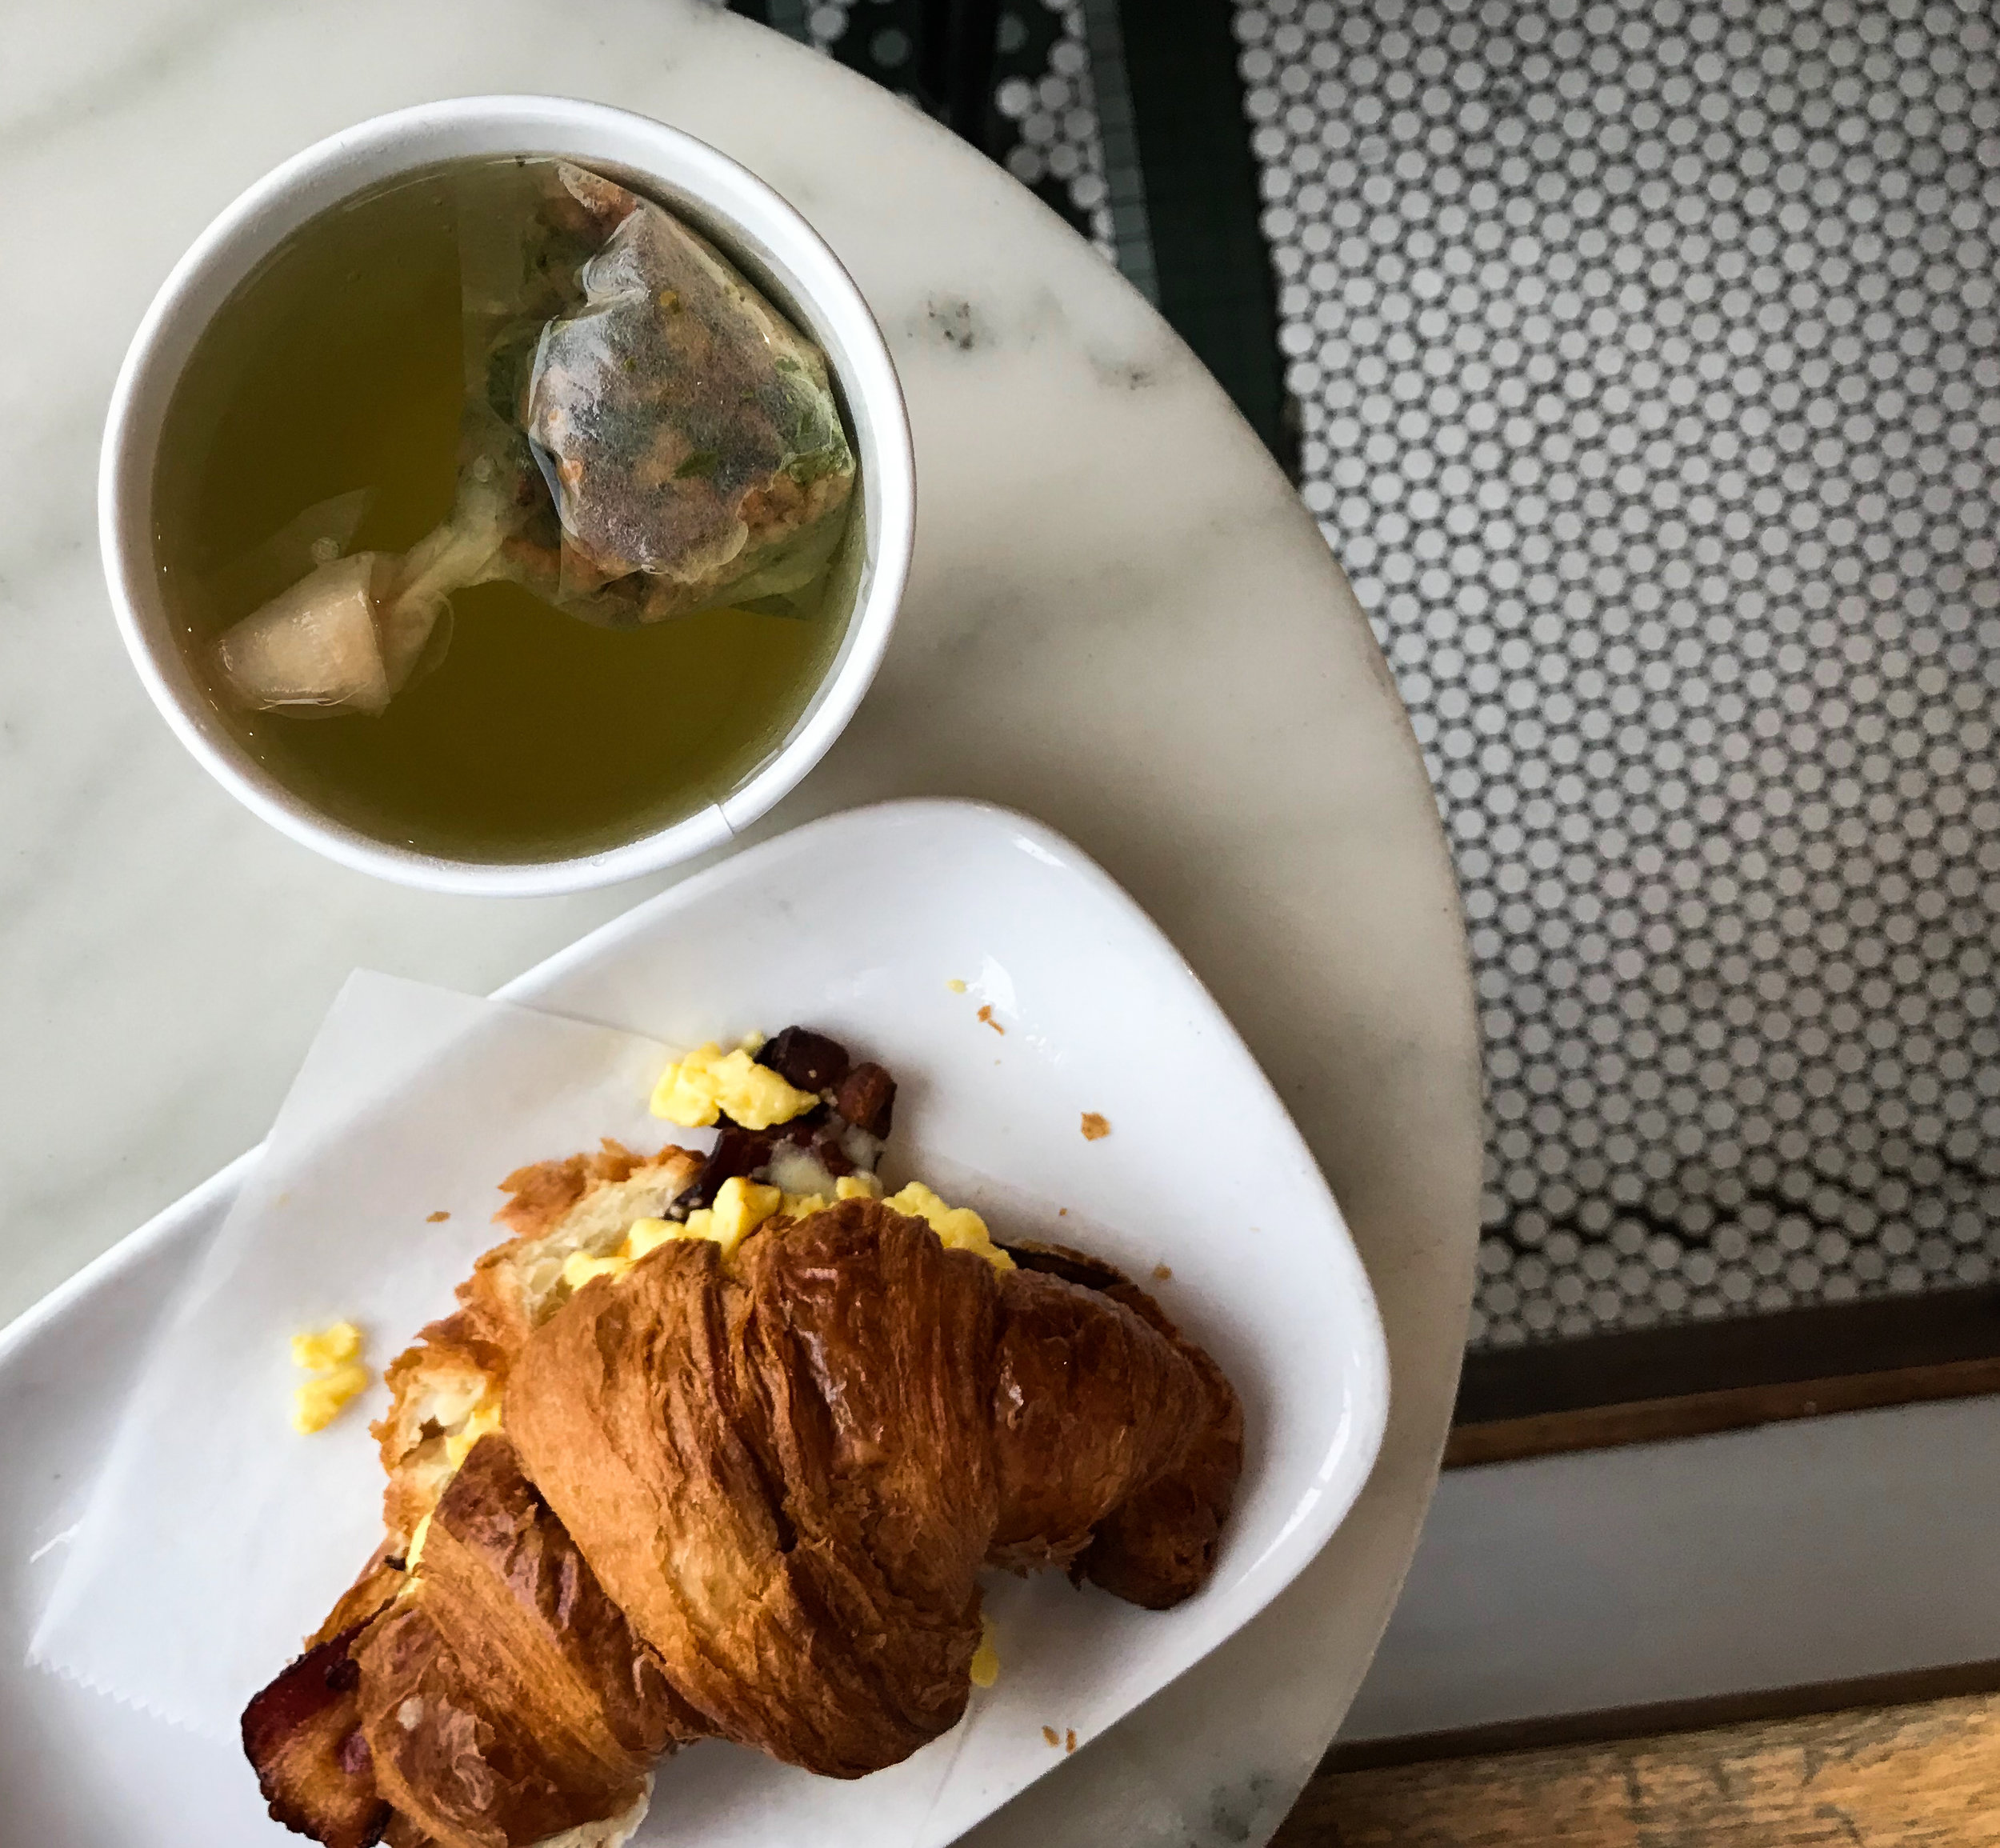 The 5 main food groups, as far as I'm concerned: genmaicha green tea, croissants, cheese, and eggs. Not pictured: dumplings. Also not pictured: NPR and podcasts on the importance of slowing down.